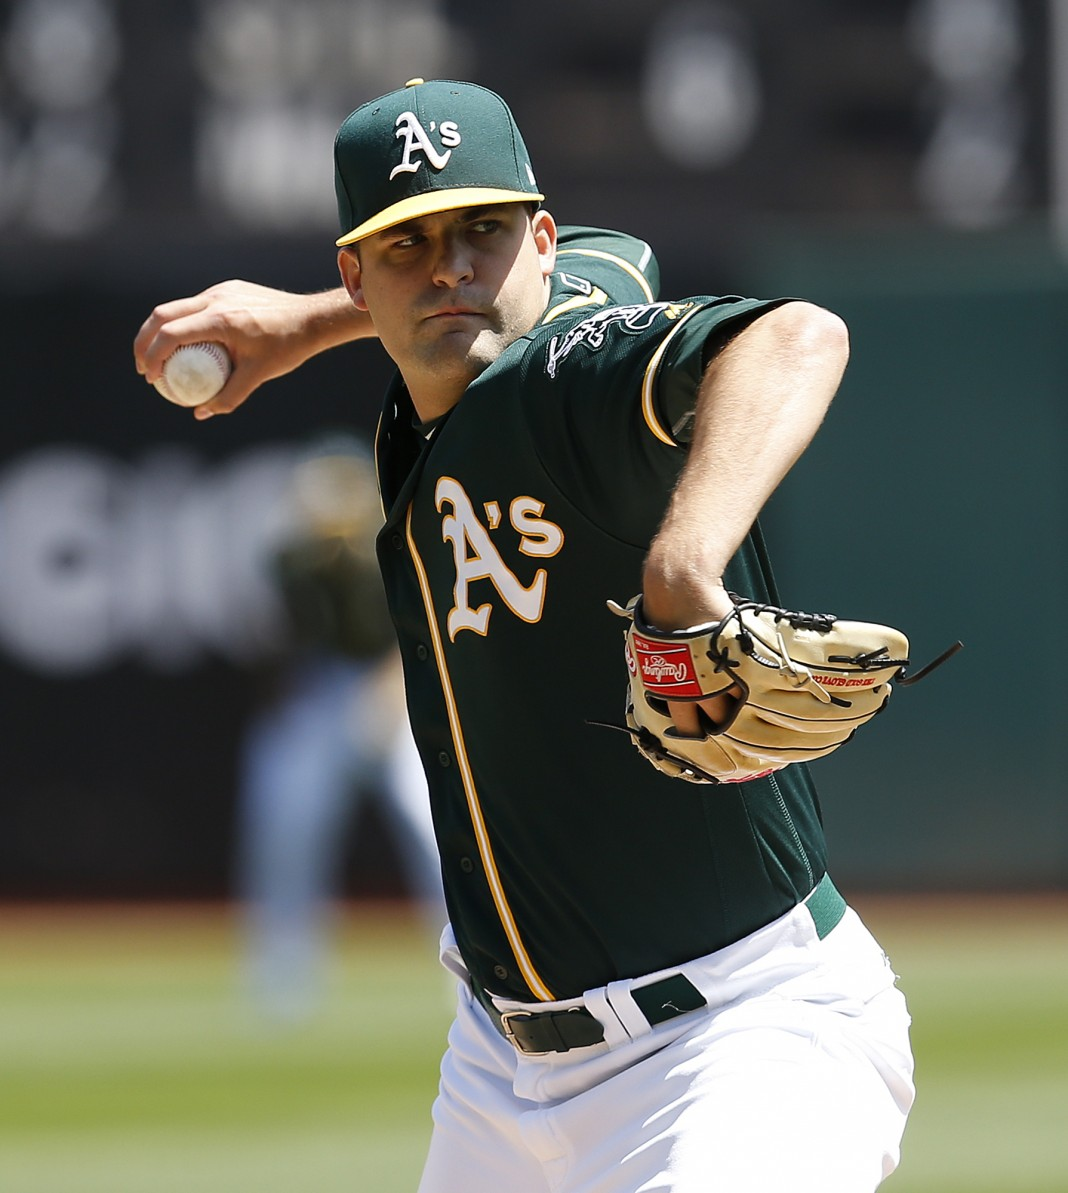 Oakland A's activate Sean Doolittle, place Andrew Triggs on DL